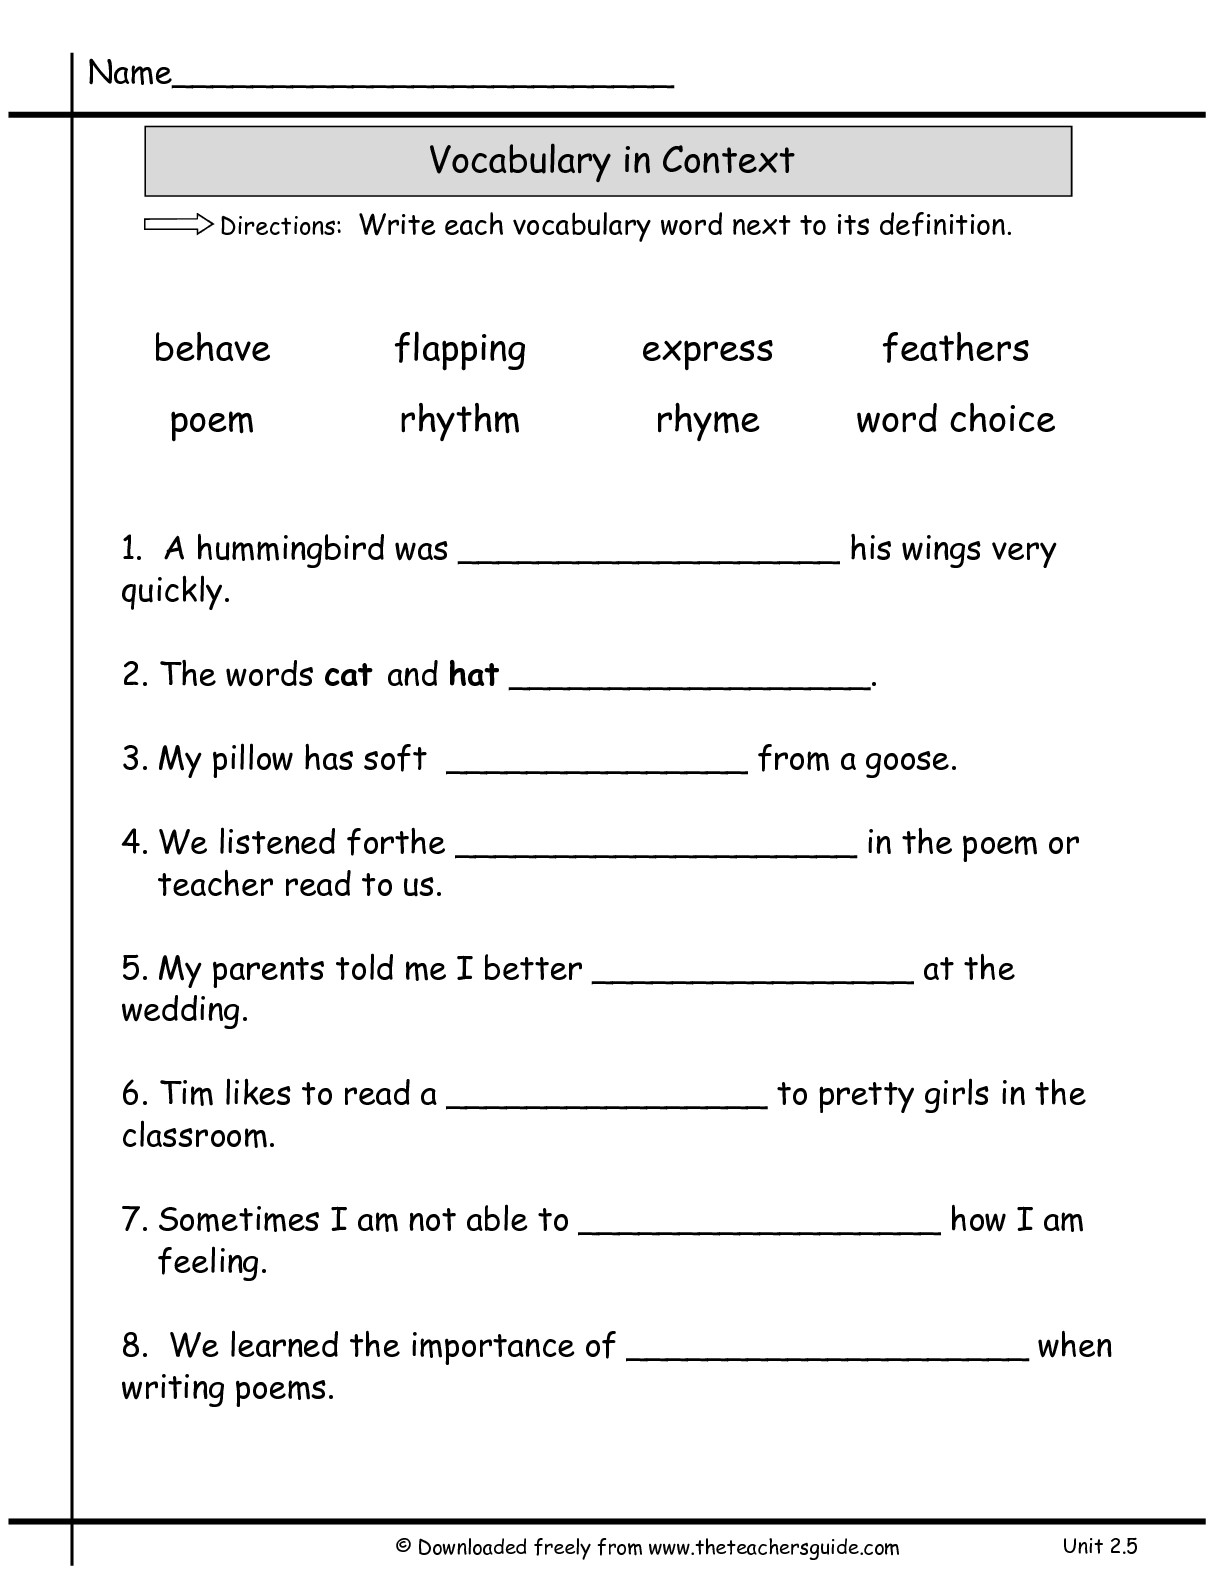 13 Best Images Of Vocabulary Practice Worksheets